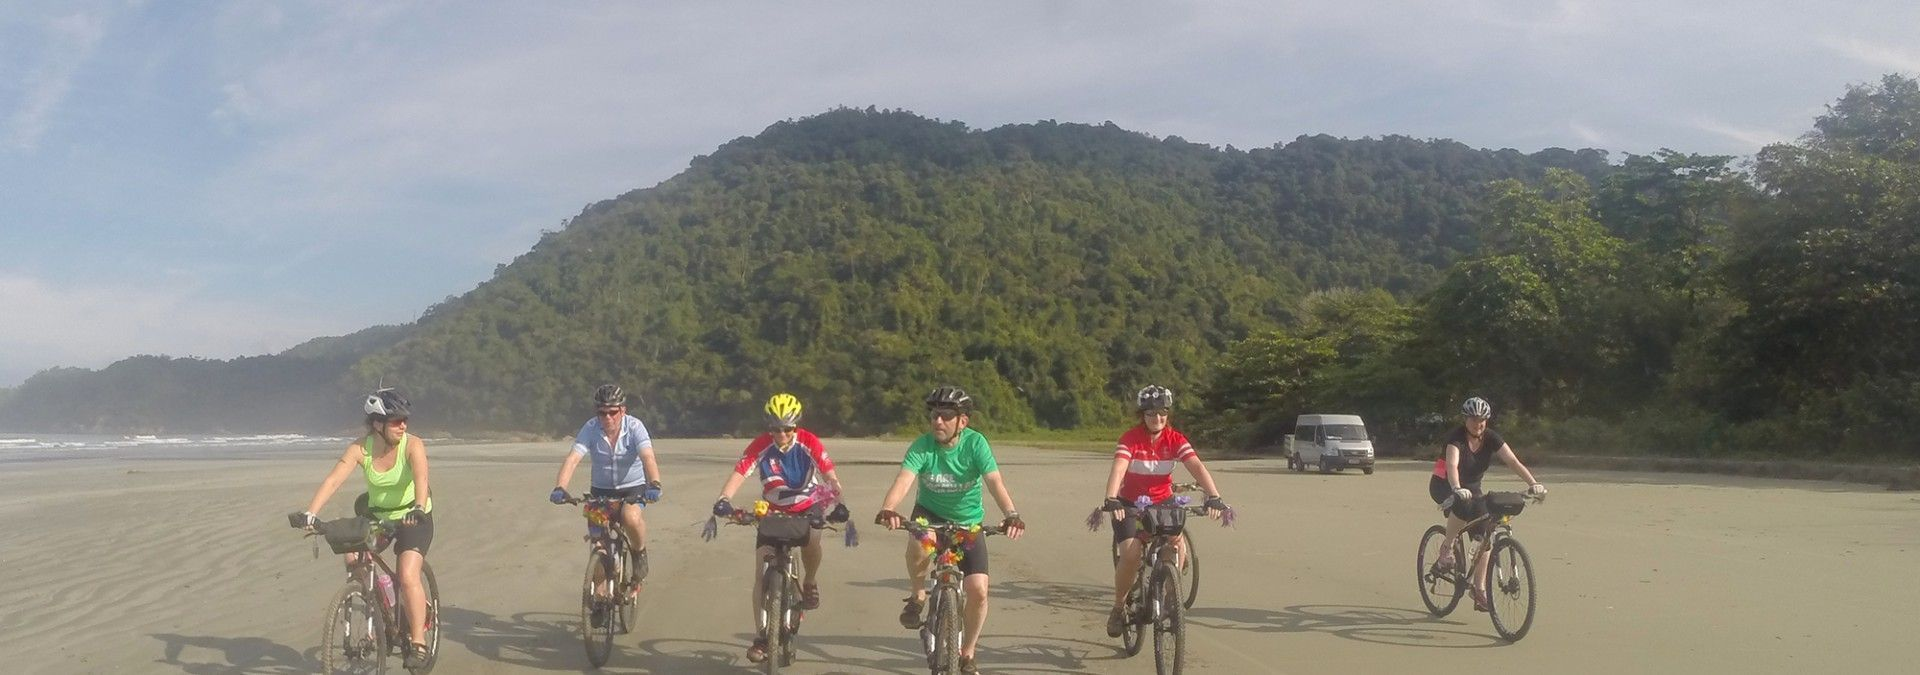 Cyclist_crossing_beach_Brazil.jpg